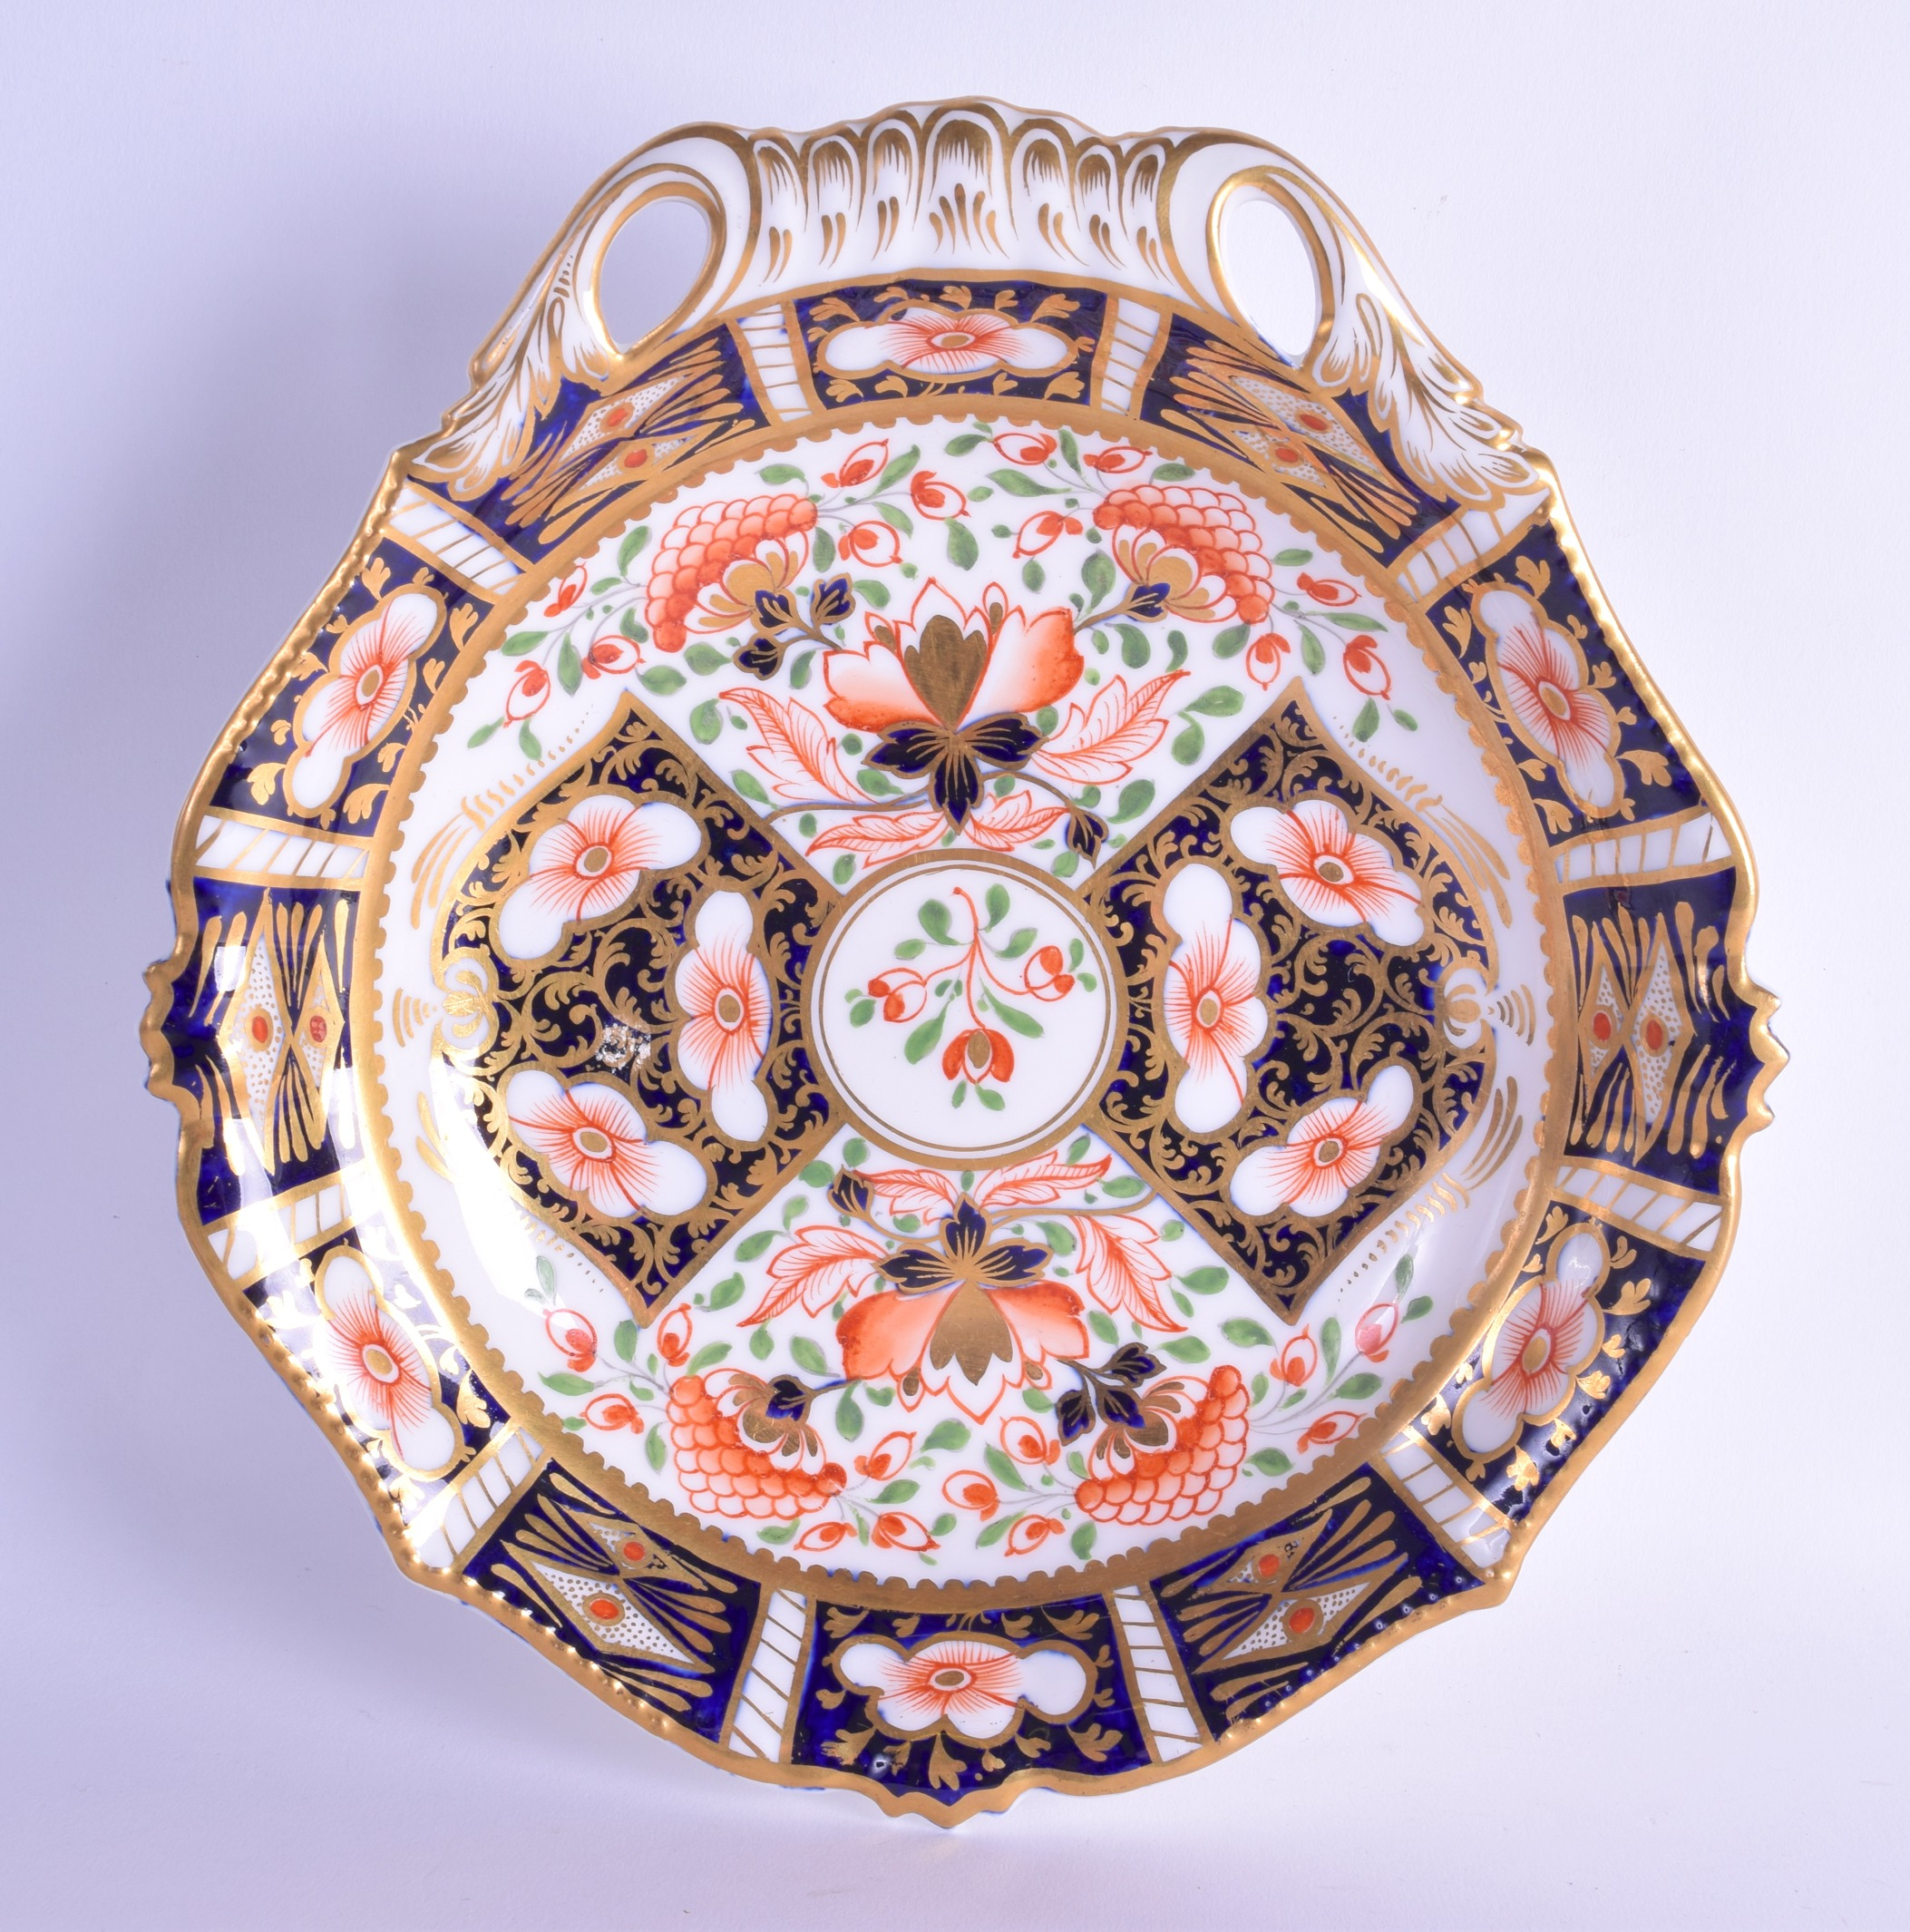 Lot 147 - Early 20th c. Derby Sampson Hancock factory imari pattern shell shaped dish painted in a fine